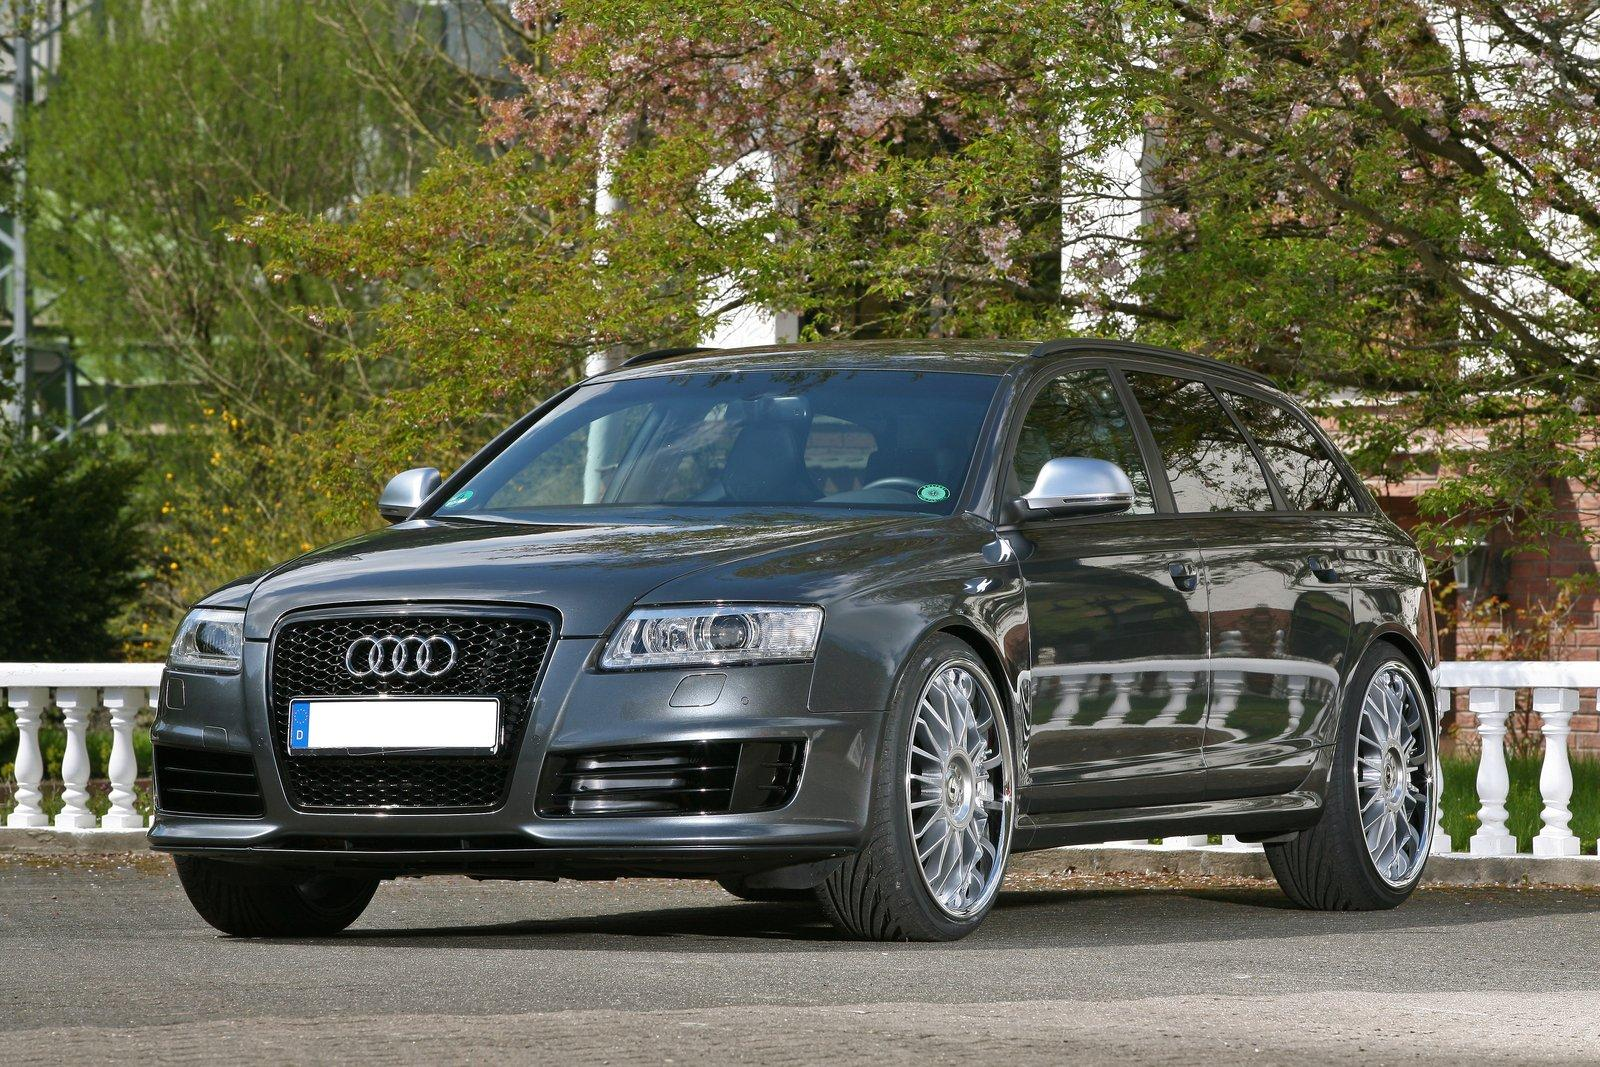 2012 schmidt revolution audi rs6 avant dark cars wallpapers. Black Bedroom Furniture Sets. Home Design Ideas